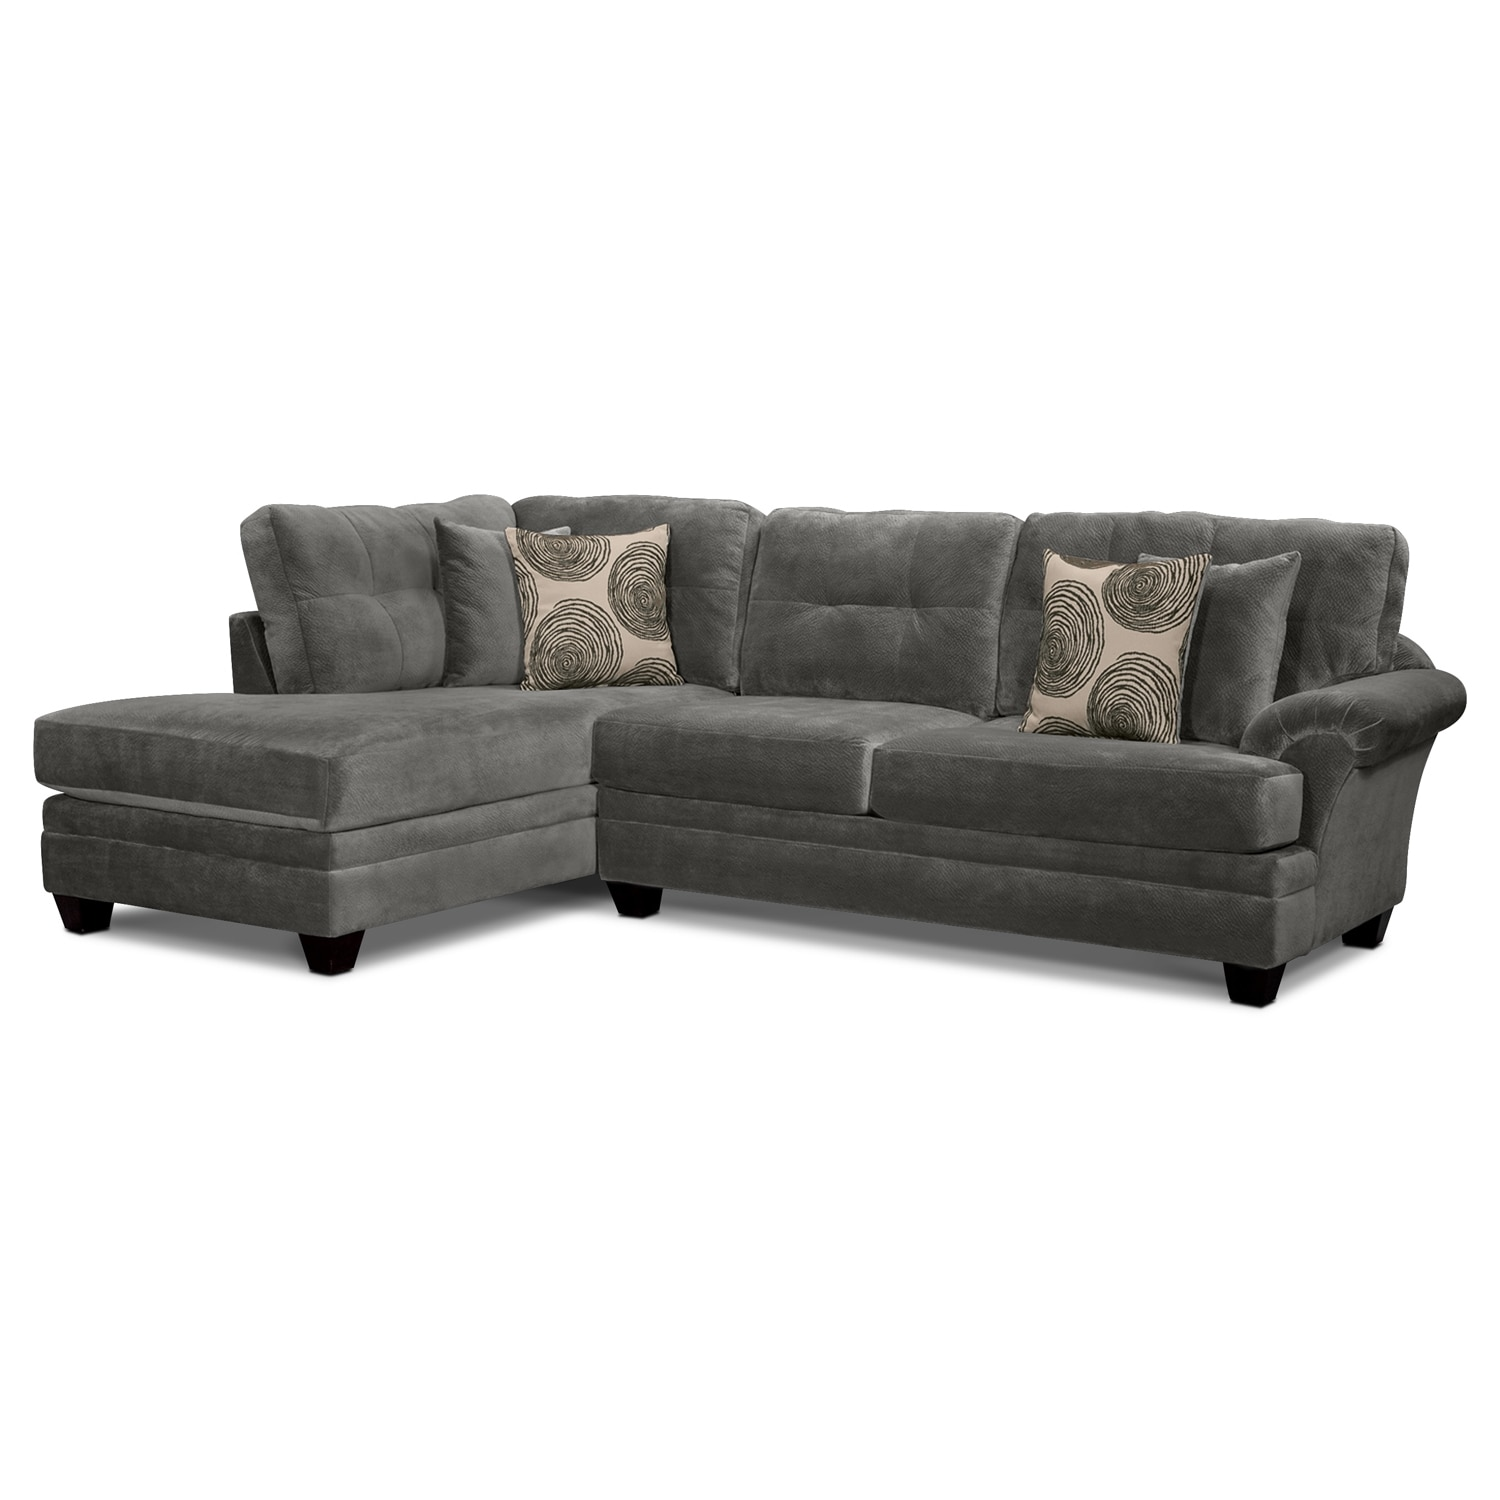 Cordelle 2 piece left facing chaise sectional gray for 2 piece sectional sofa with chaise